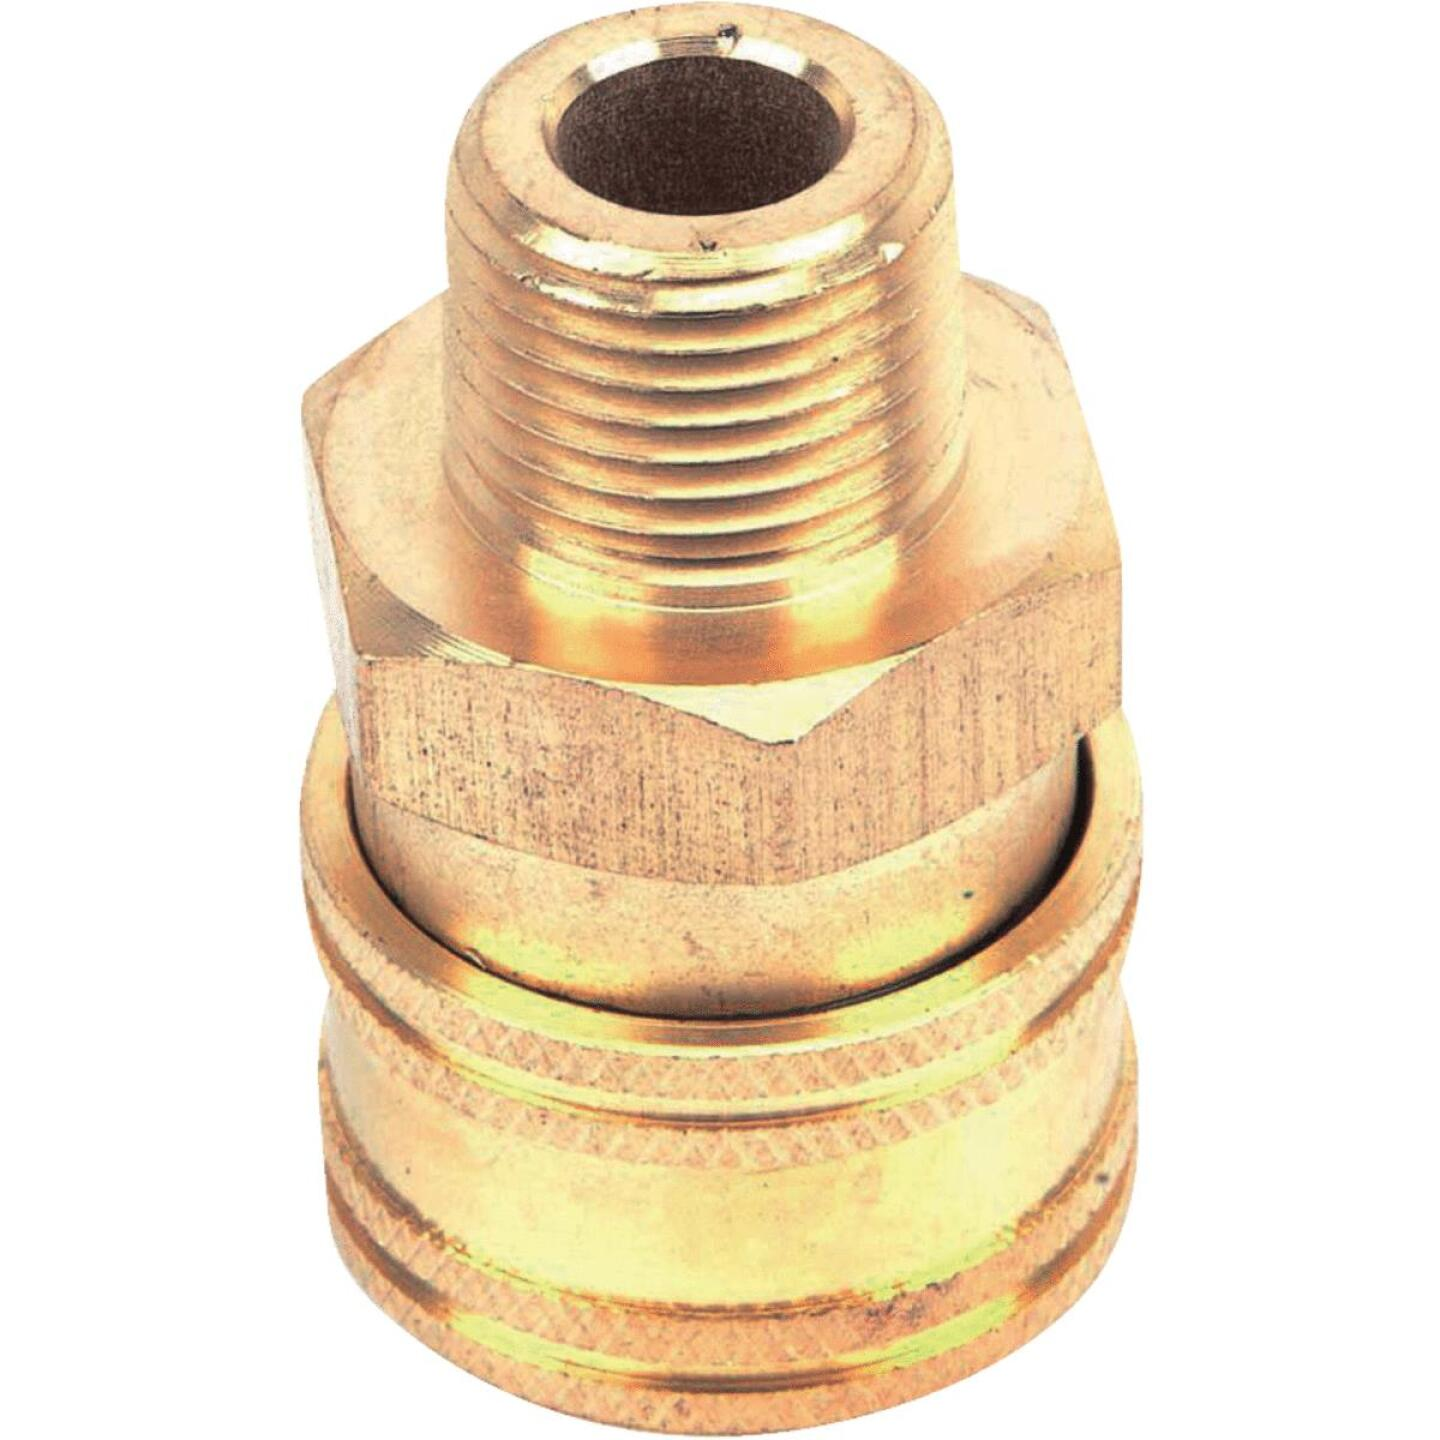 Forney 3/8 In. Male Quick Coupler Pressure Washer Socket Image 3